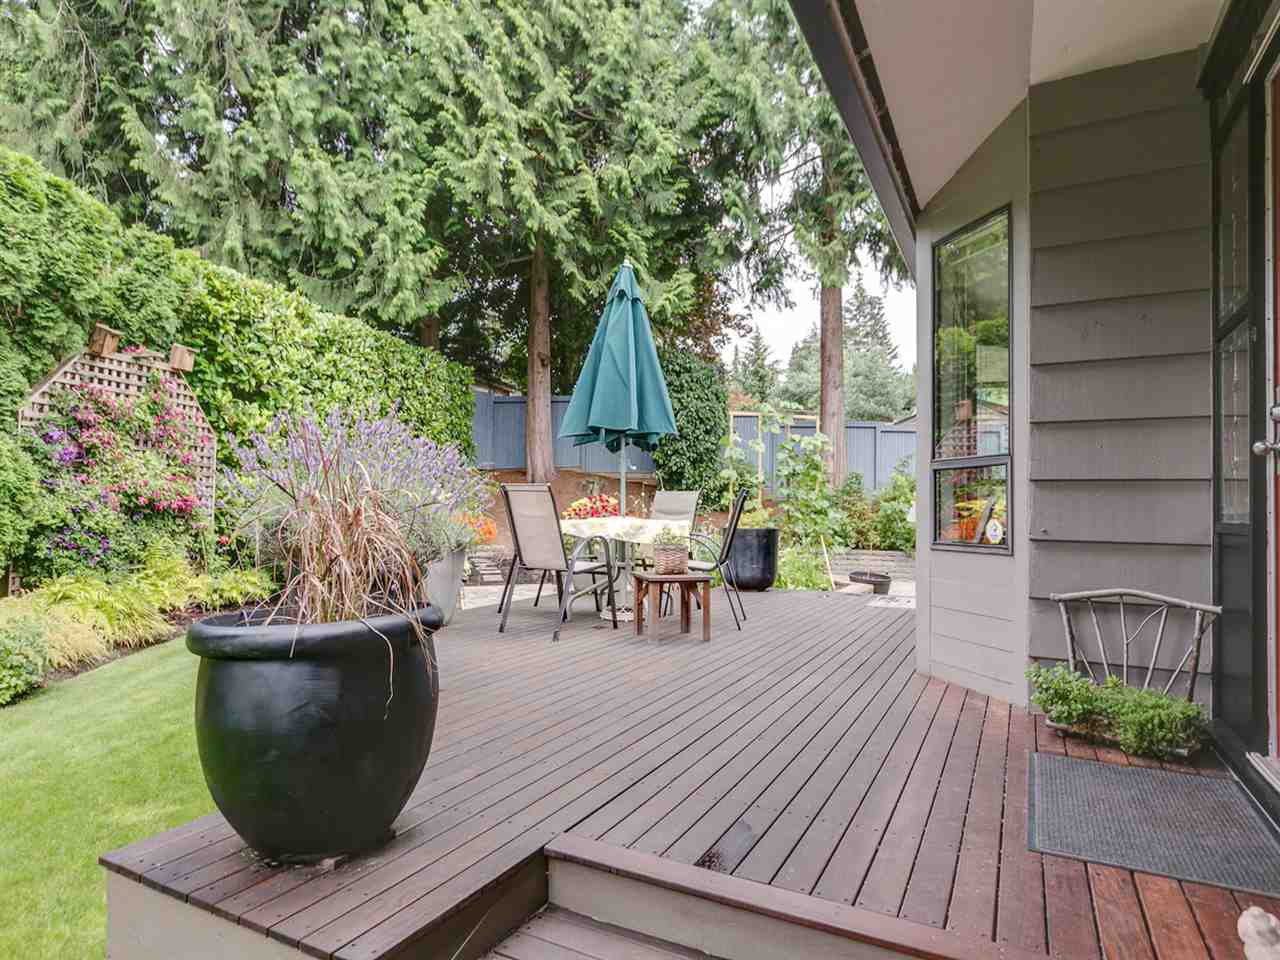 Photo 4: Photos: 1959 ALDERLYNN Drive in North Vancouver: Westlynn House for sale : MLS®# R2094199